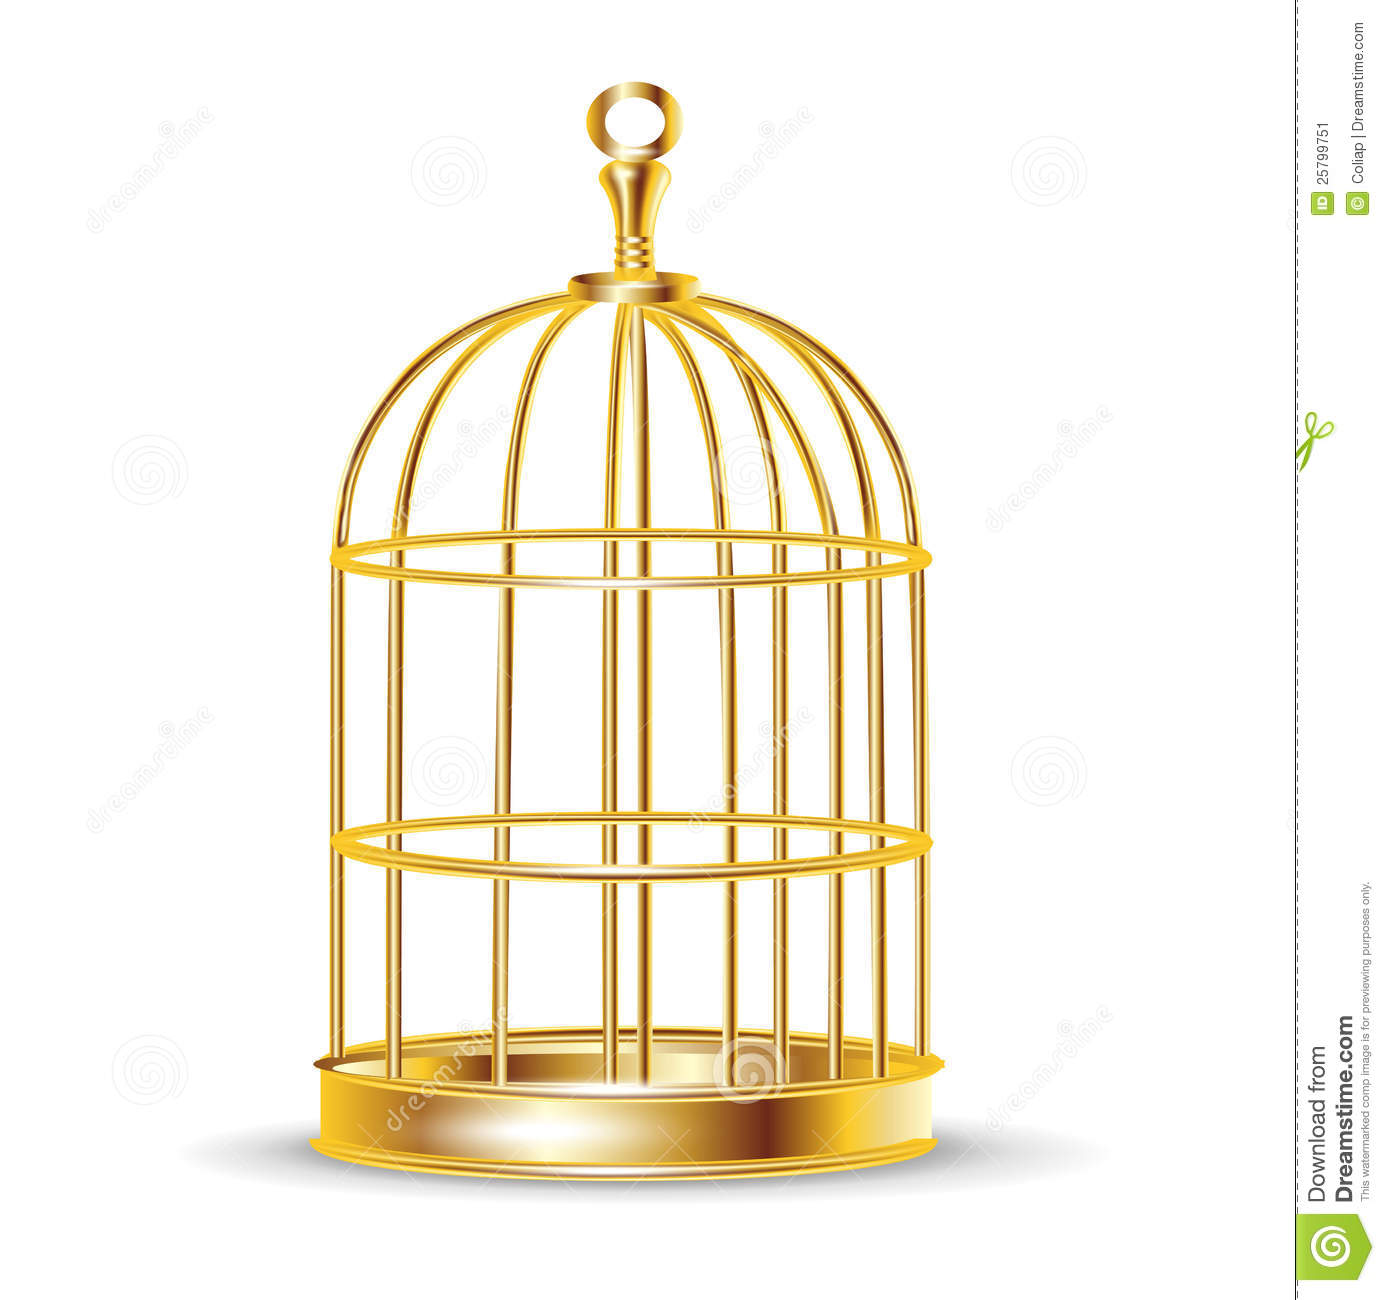 Golden bird cage stock vector. Image of trapped, shape